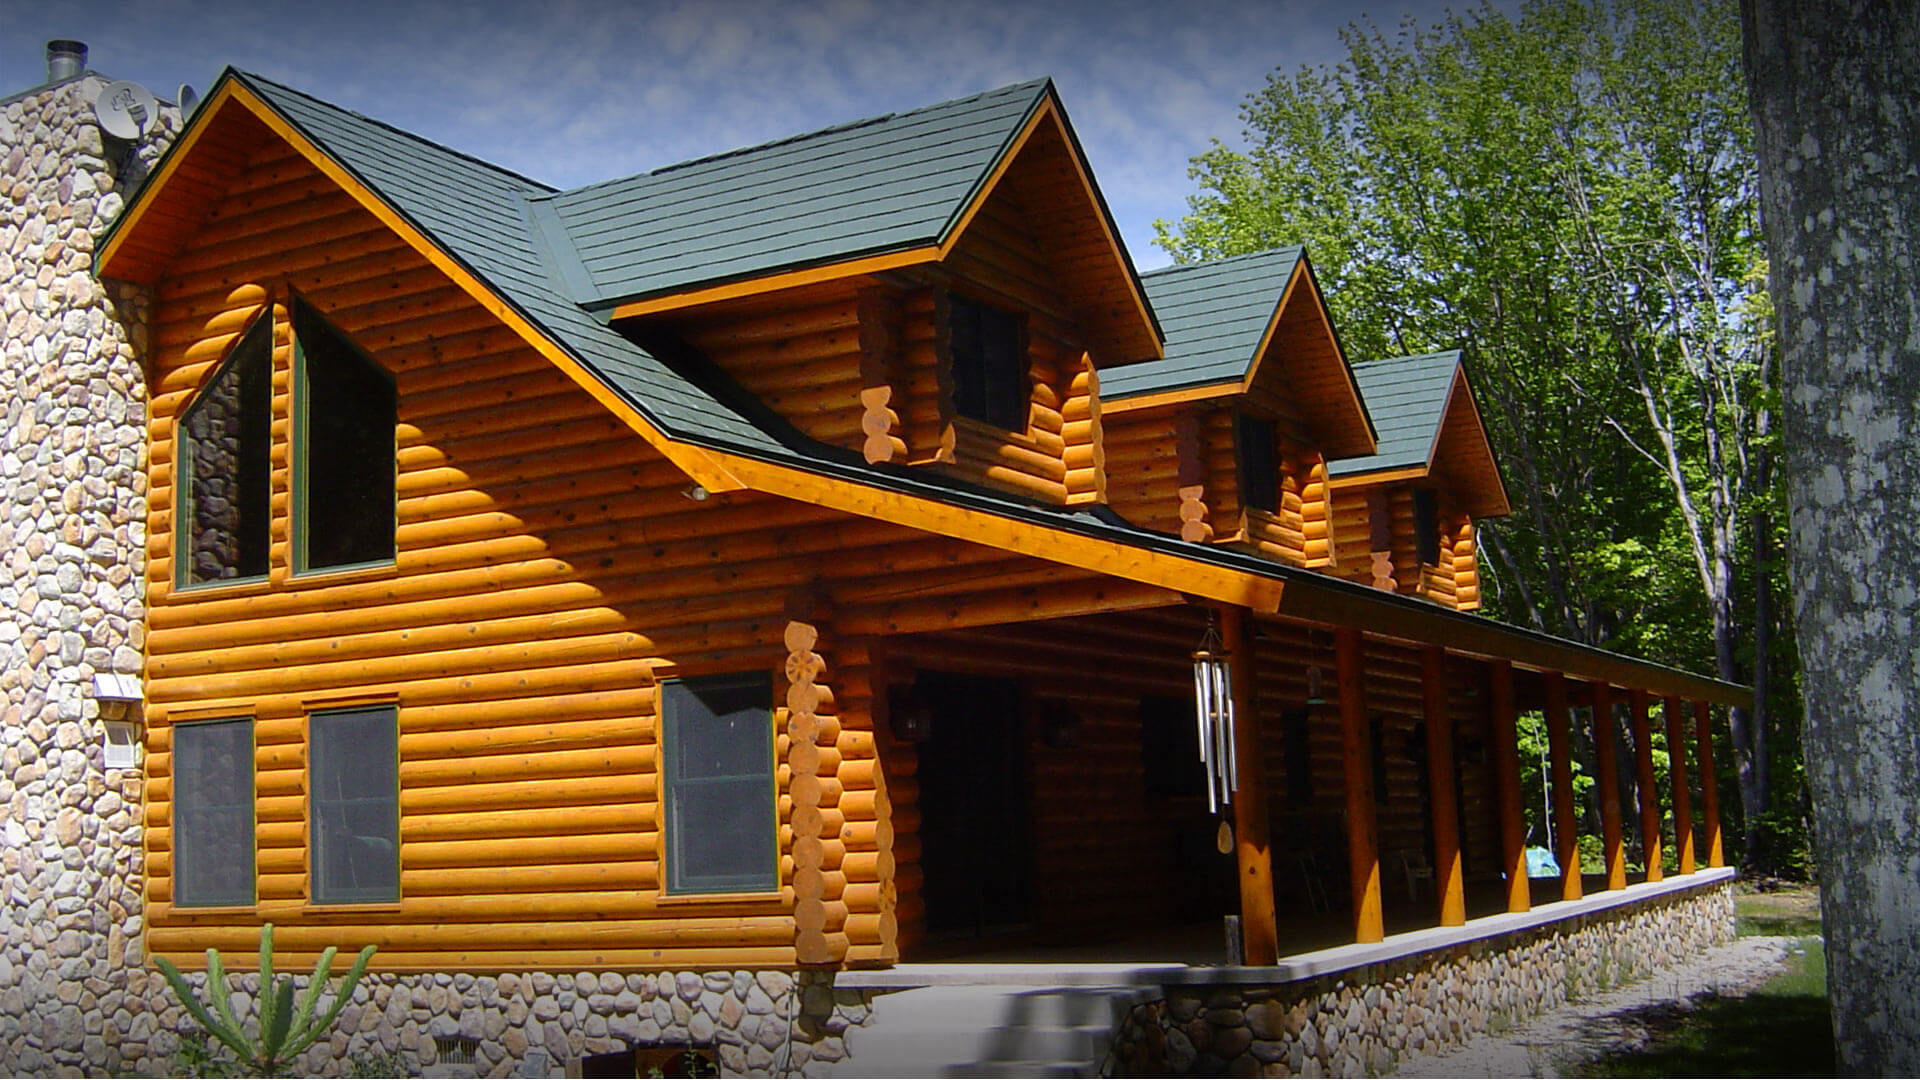 Metal Roof on a Cabin